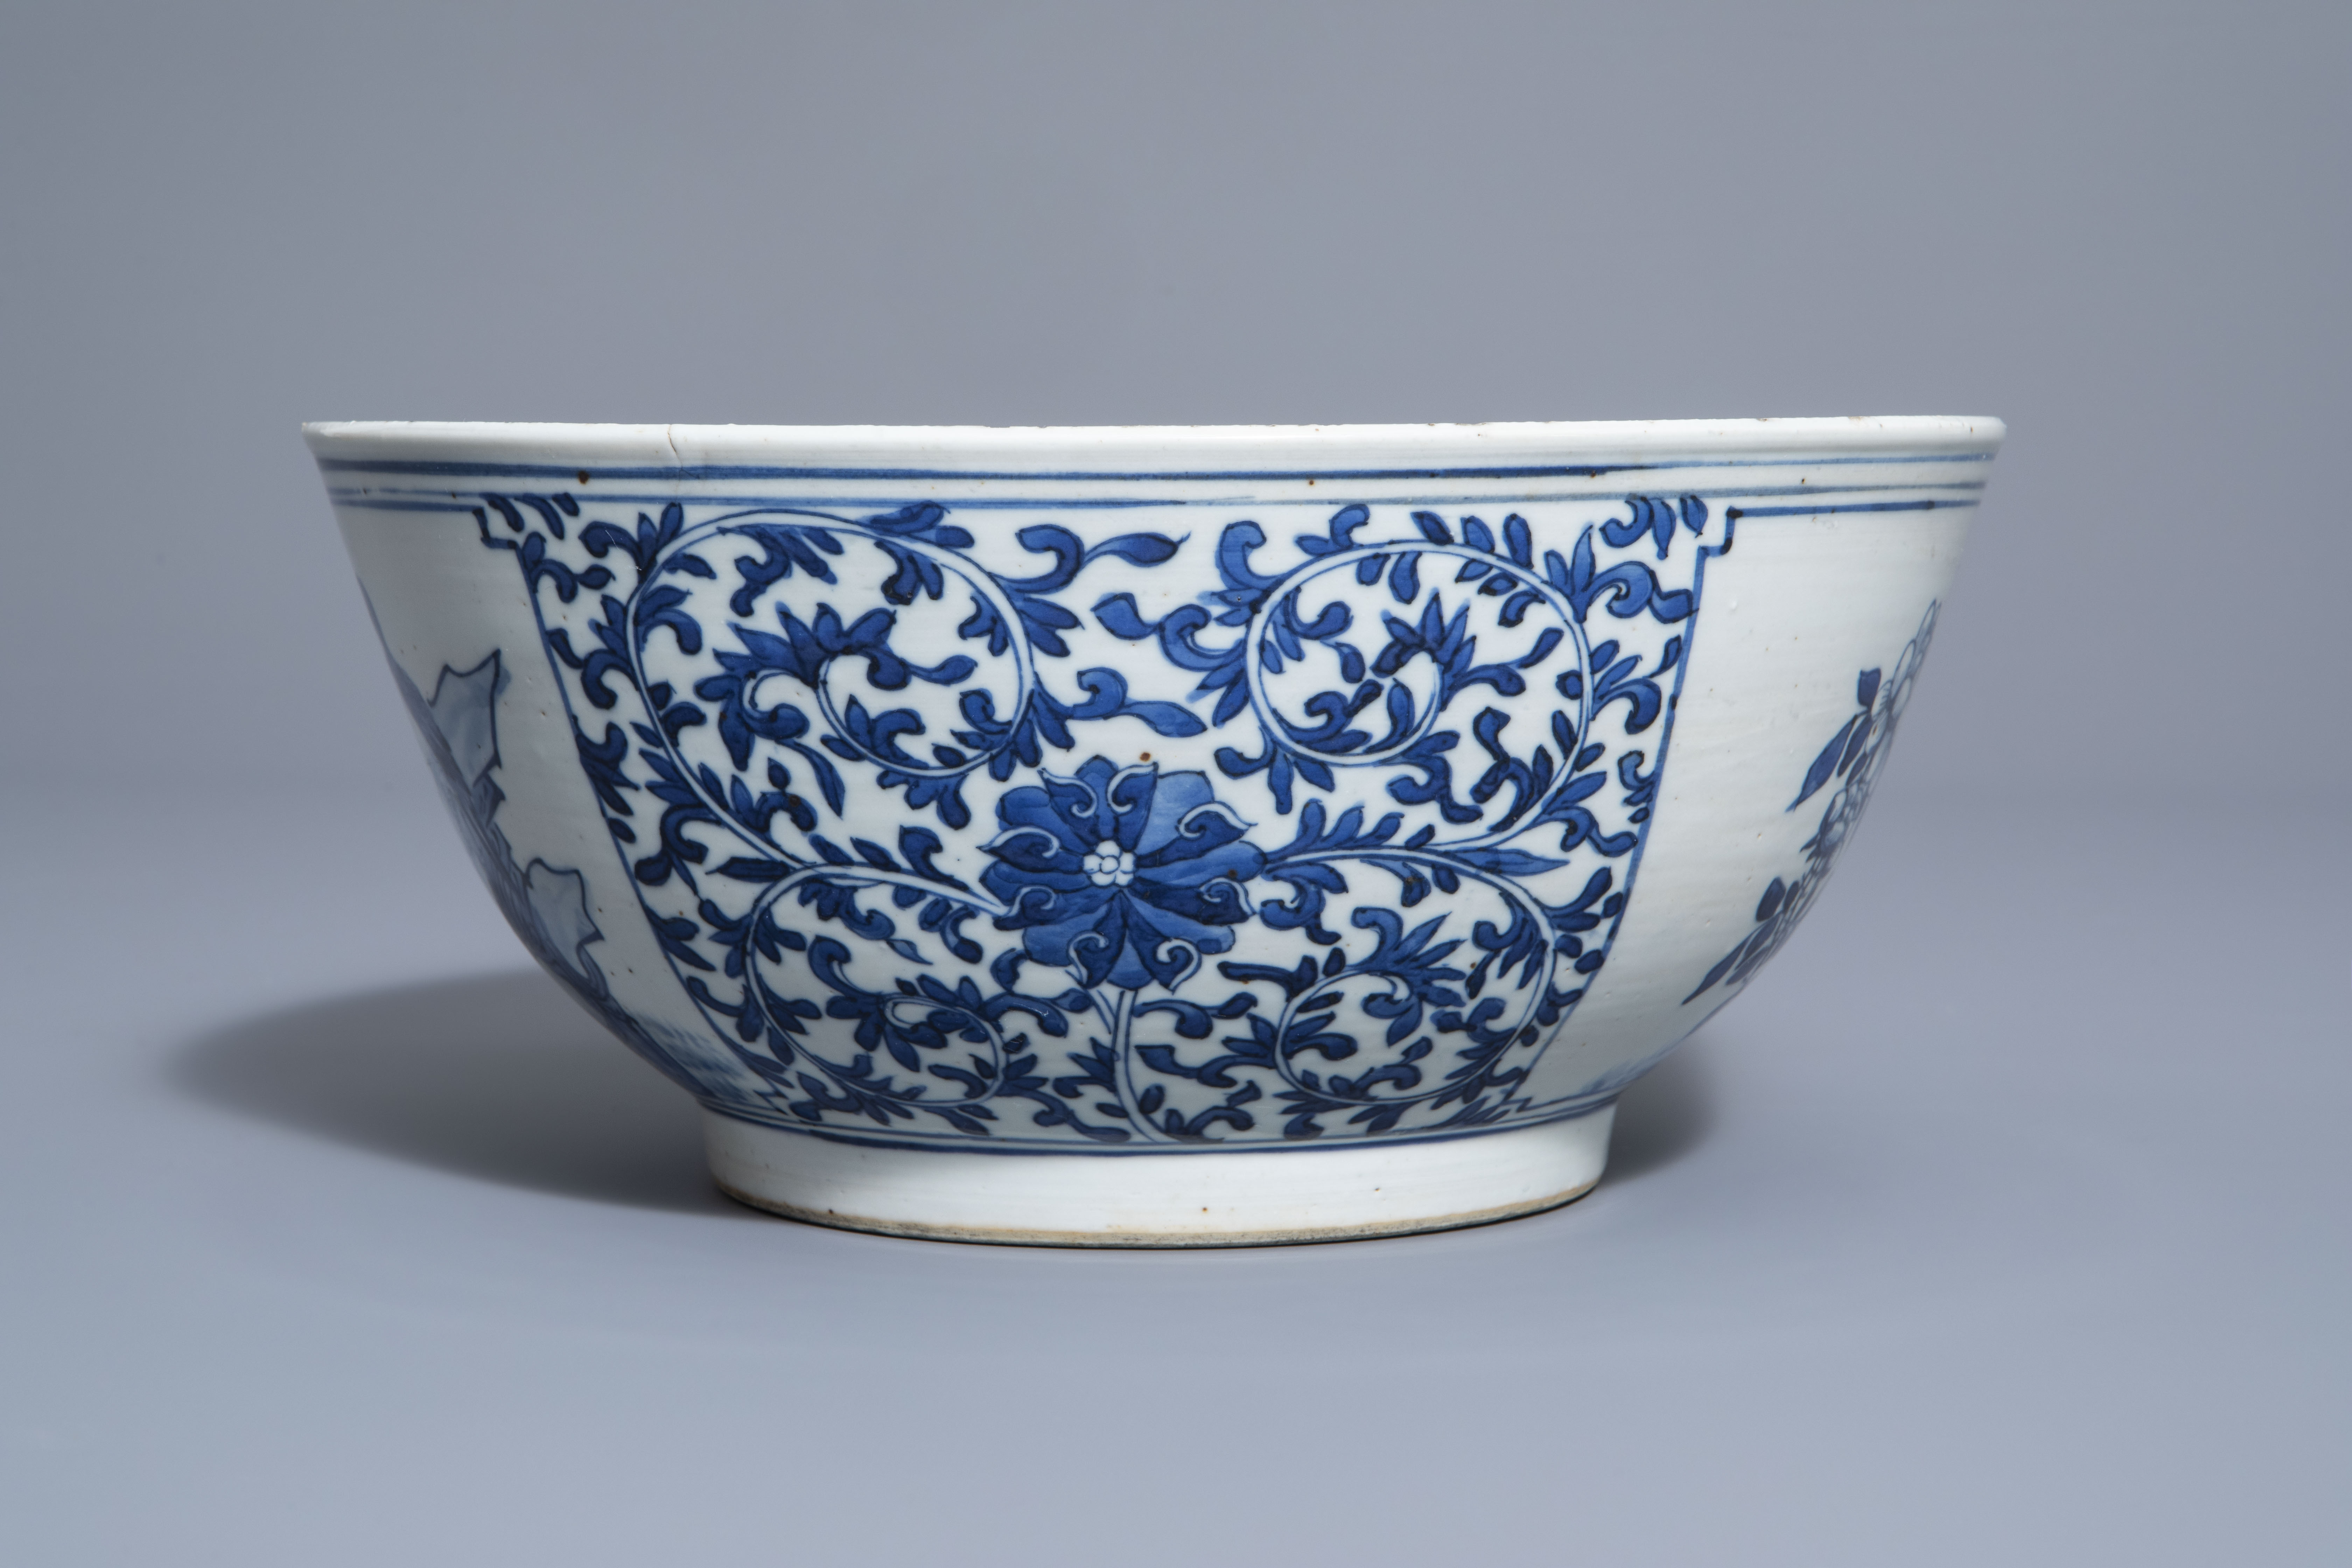 A Chinese blue and white bowl with birds and flowers, 19th C. - Image 5 of 7